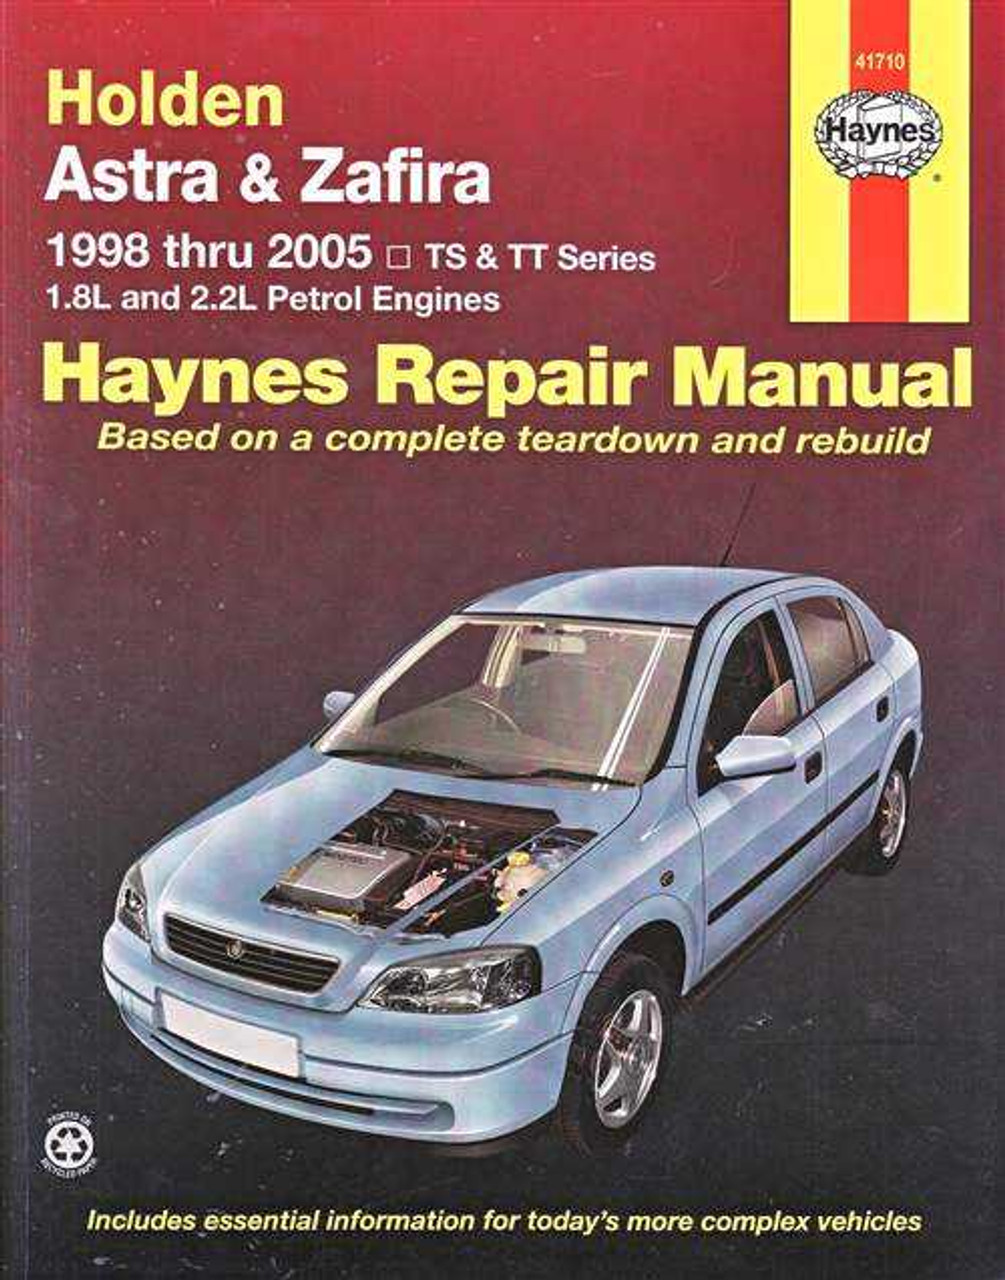 astra manual workshop product user guide instruction u2022 rh testdpc co opel astra g service manual download free opel astra g coupe service manual